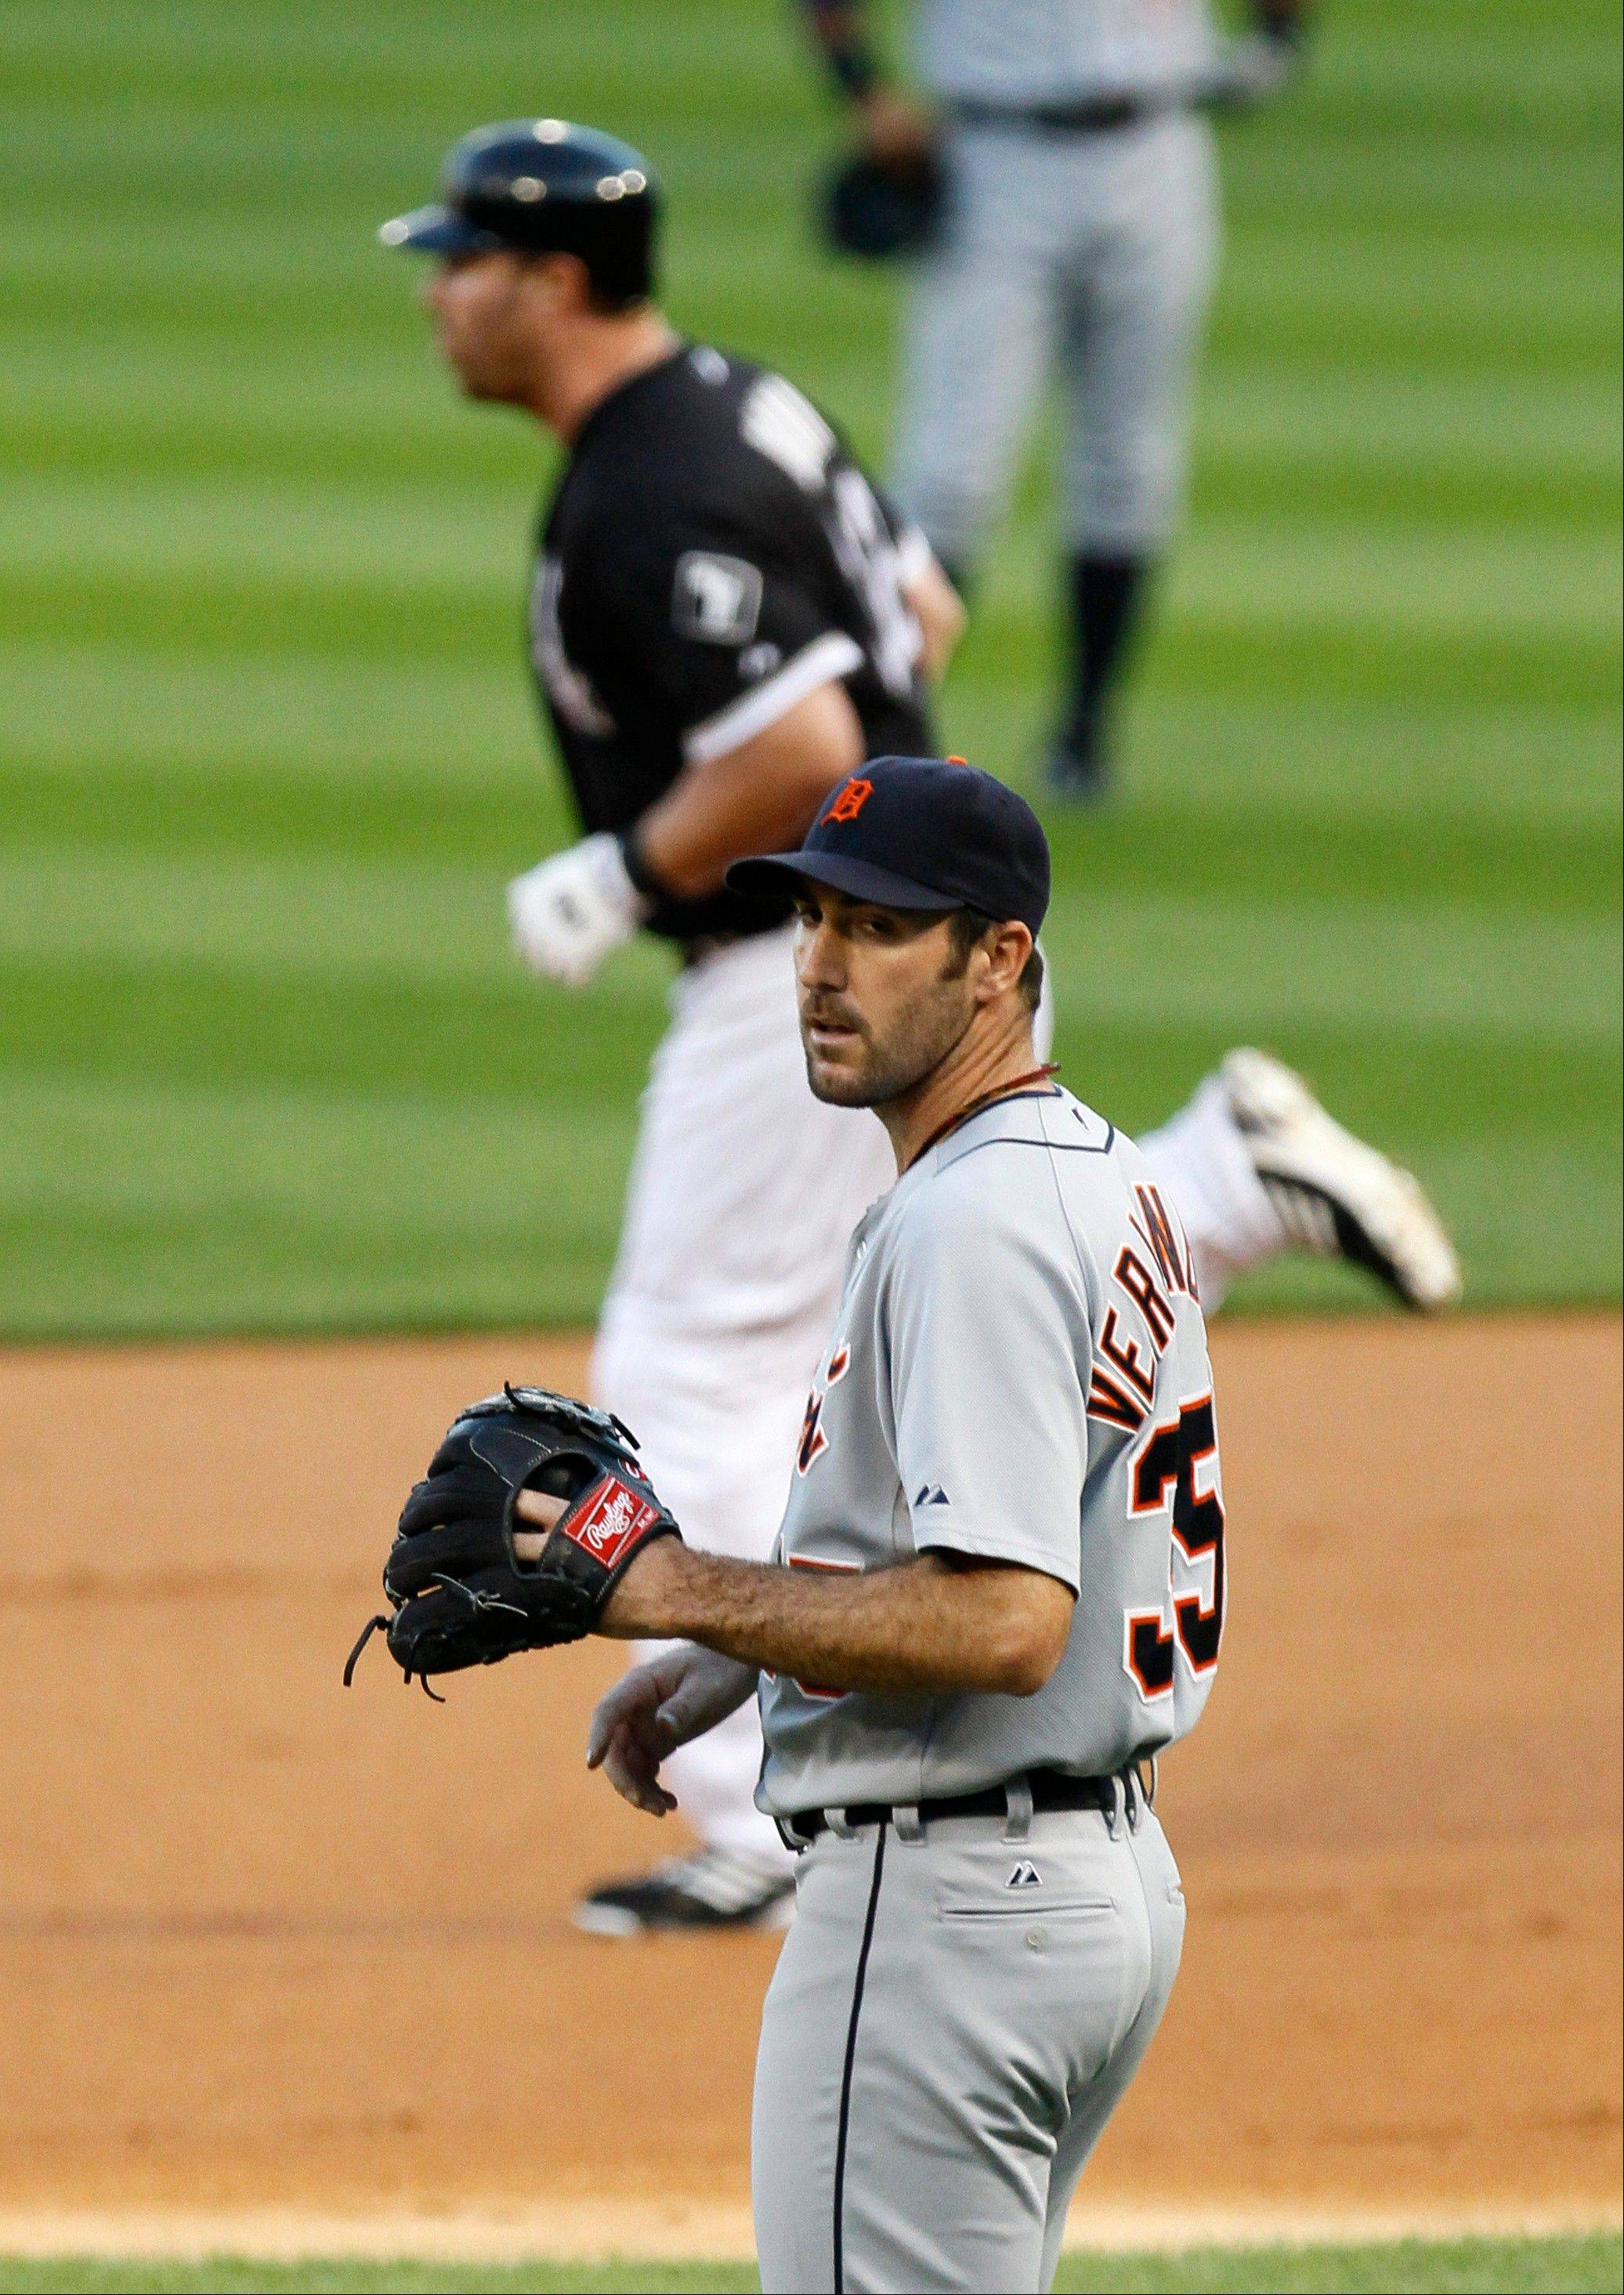 Sox nick Verlander twice, but Tigers ace hangs tough